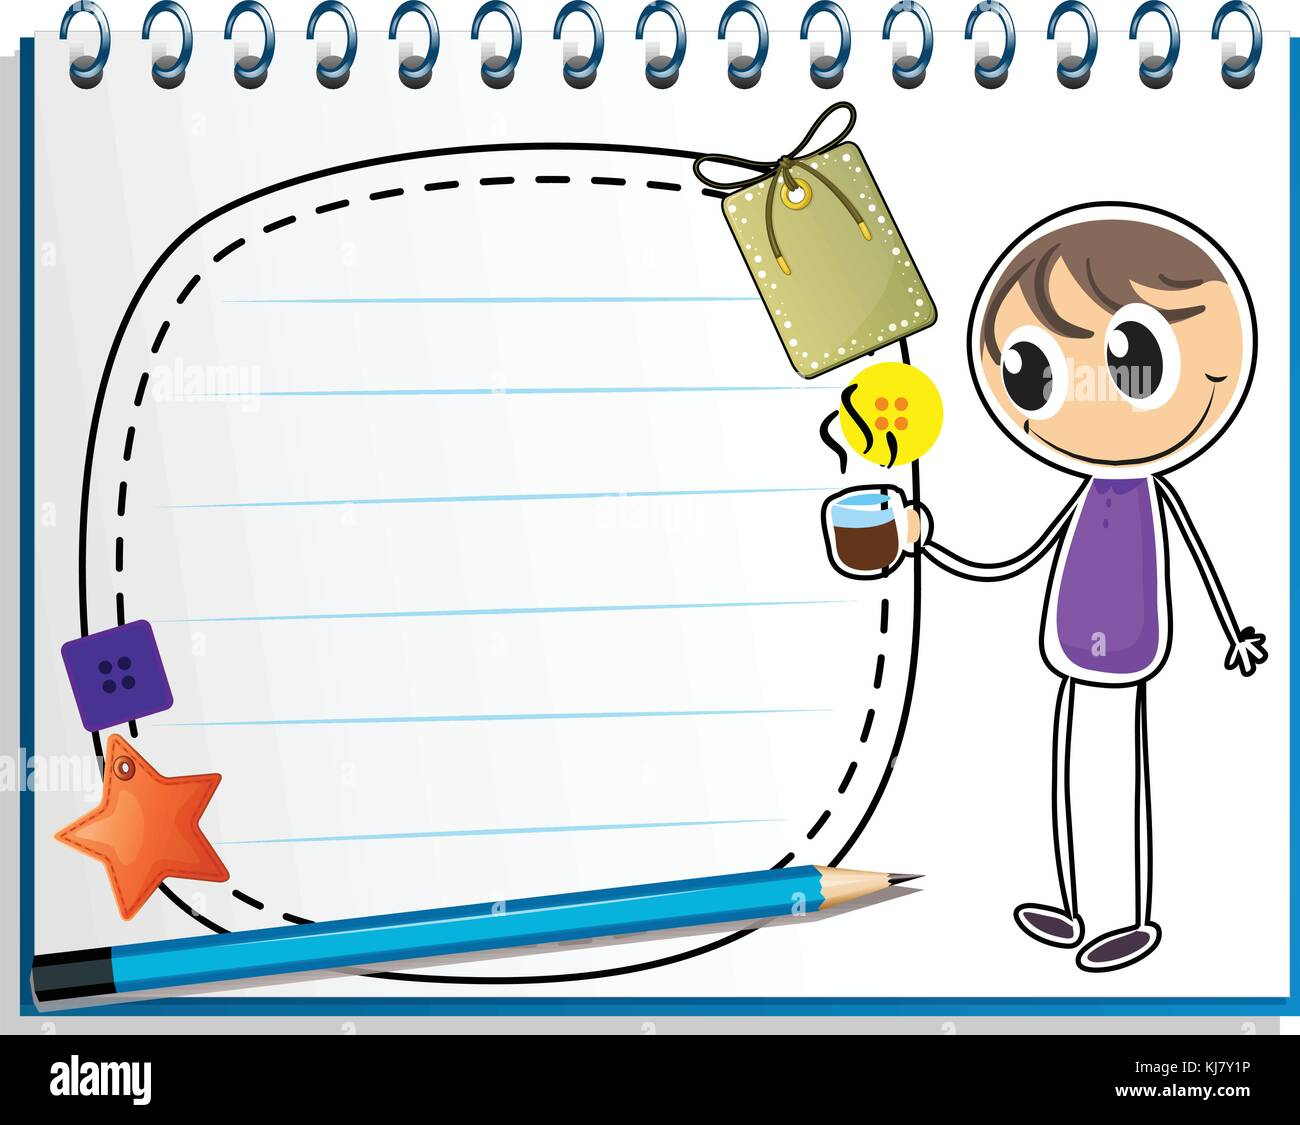 Illustration of a notebook with a drawing of a boy holding a cup of hot tea on a white background - Stock Image